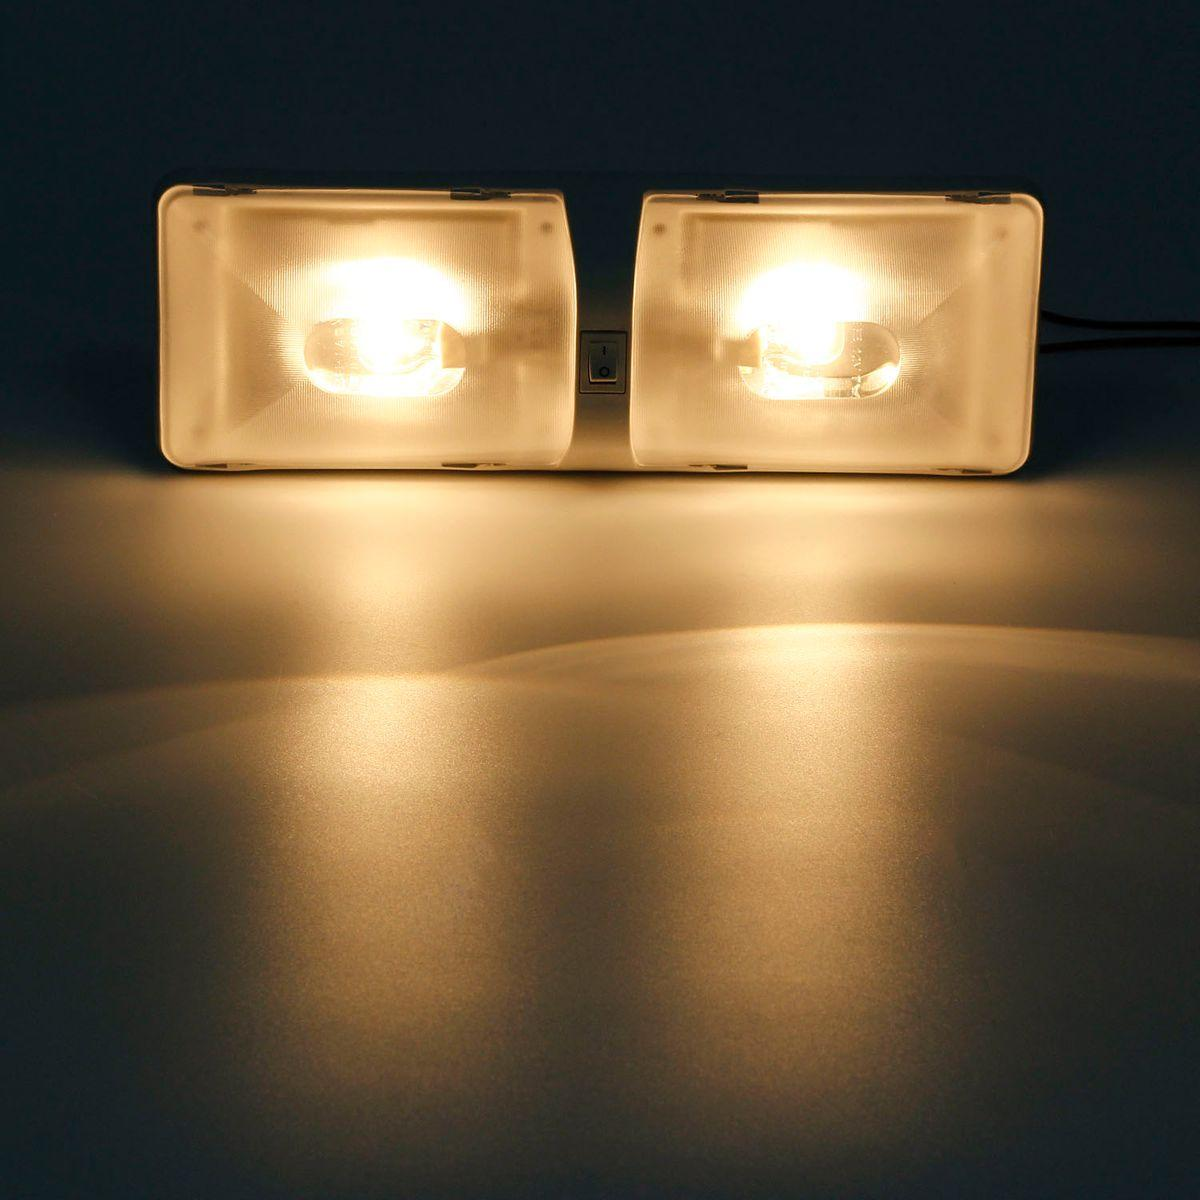 2x Euro Style Lighting Fixture Rv Trailer Cargo Boat Ceiling Dome Light Lamp Ebay